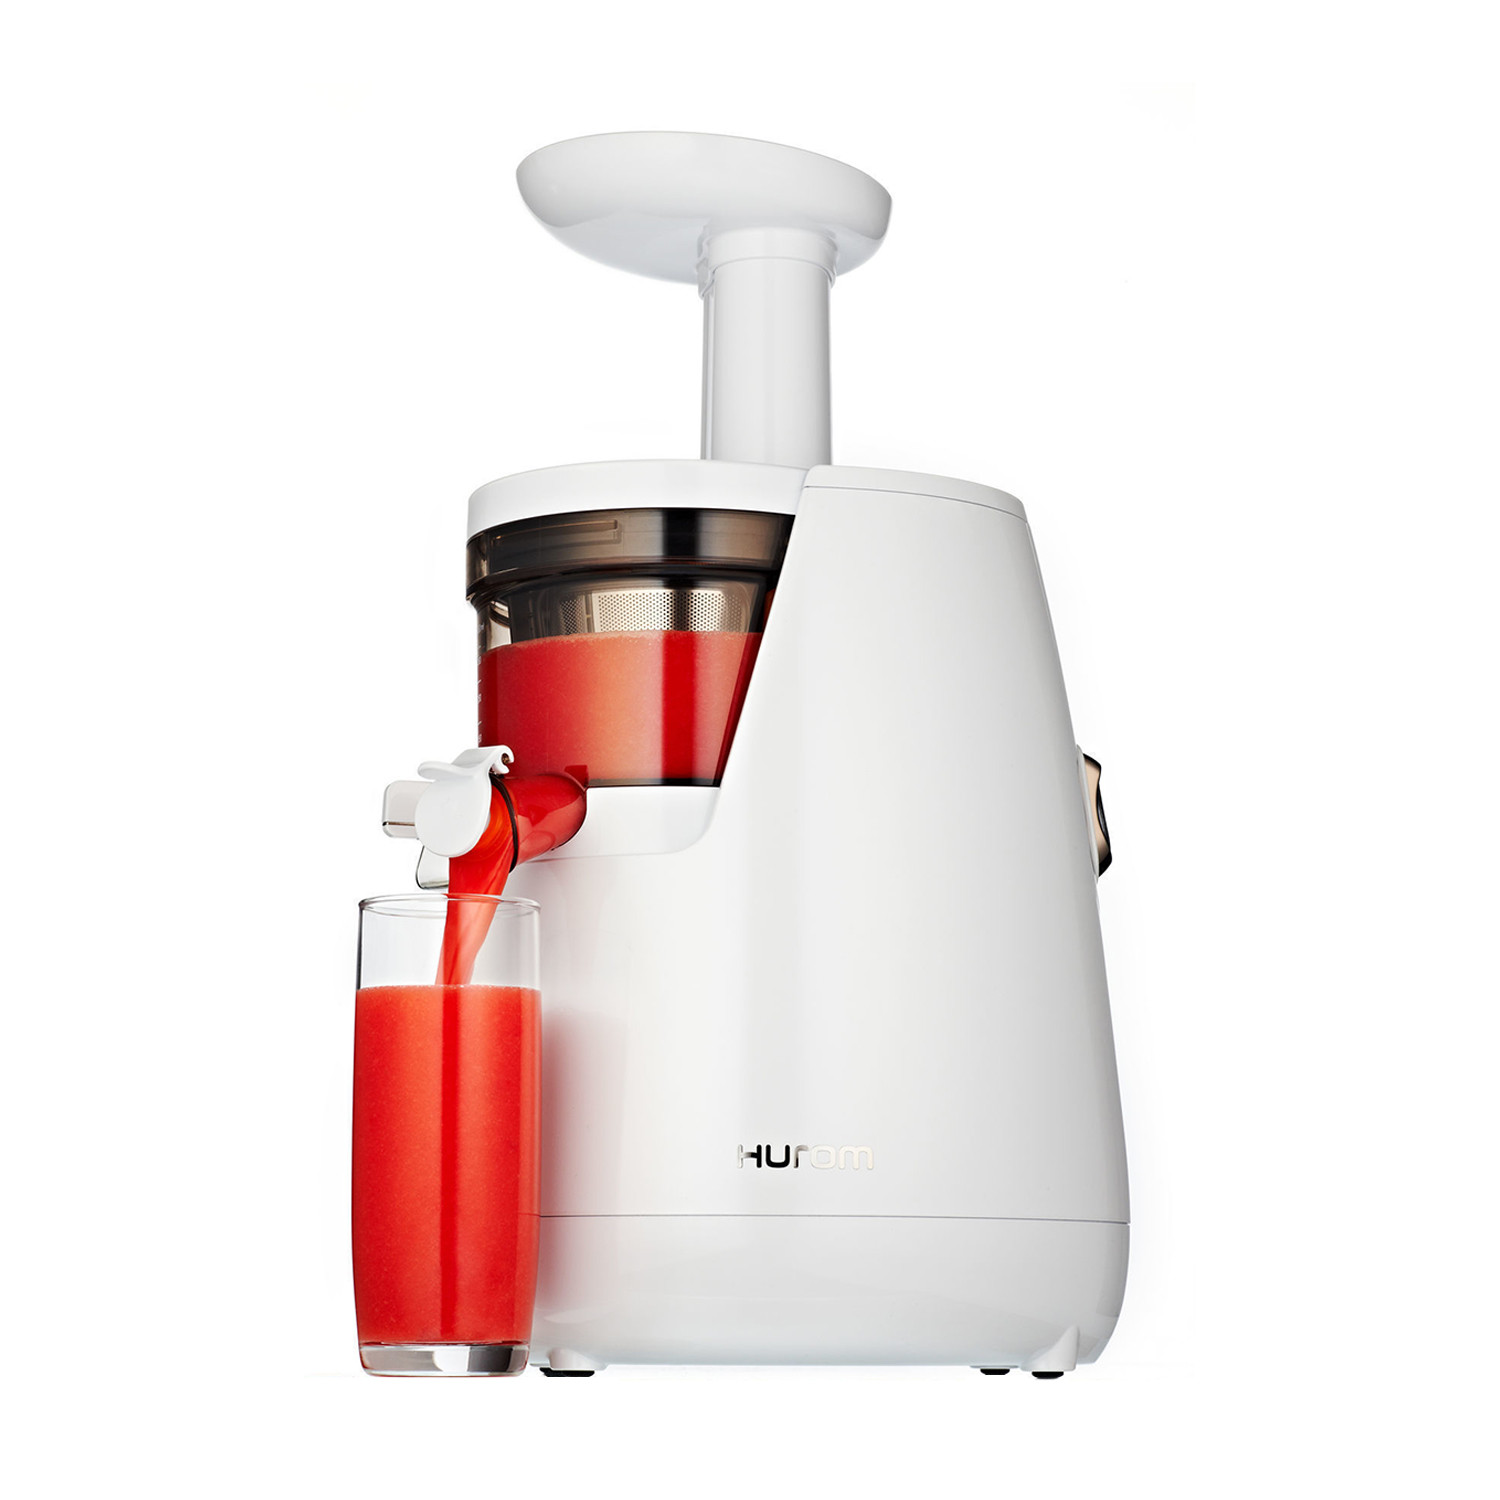 Slow Juicer Vs Extractor : Slow Juicer Hurom. . Hurom Hu100 vs Hurom Elite Slow Juicer Hhsbb11. . Hurom Elite Slow Juicer ...